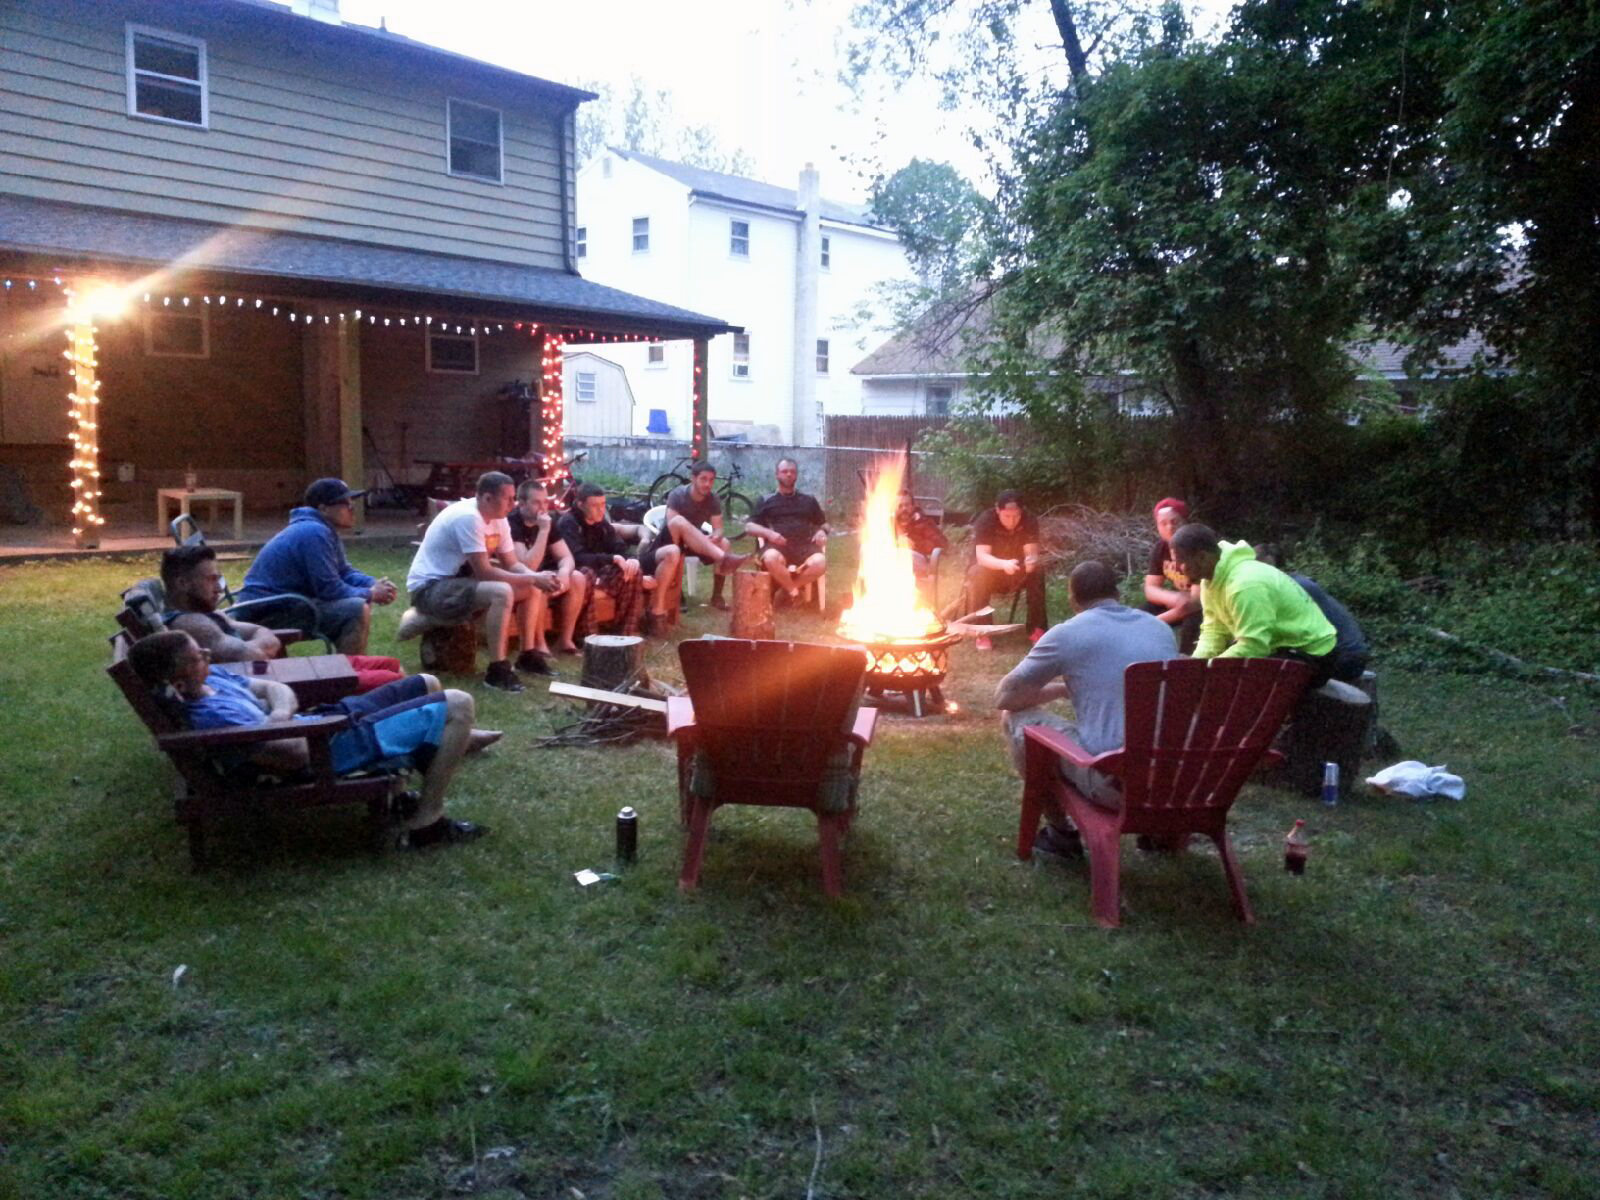 Independence Lodge Sober Living supports its residents with regular campfire recovery meetings